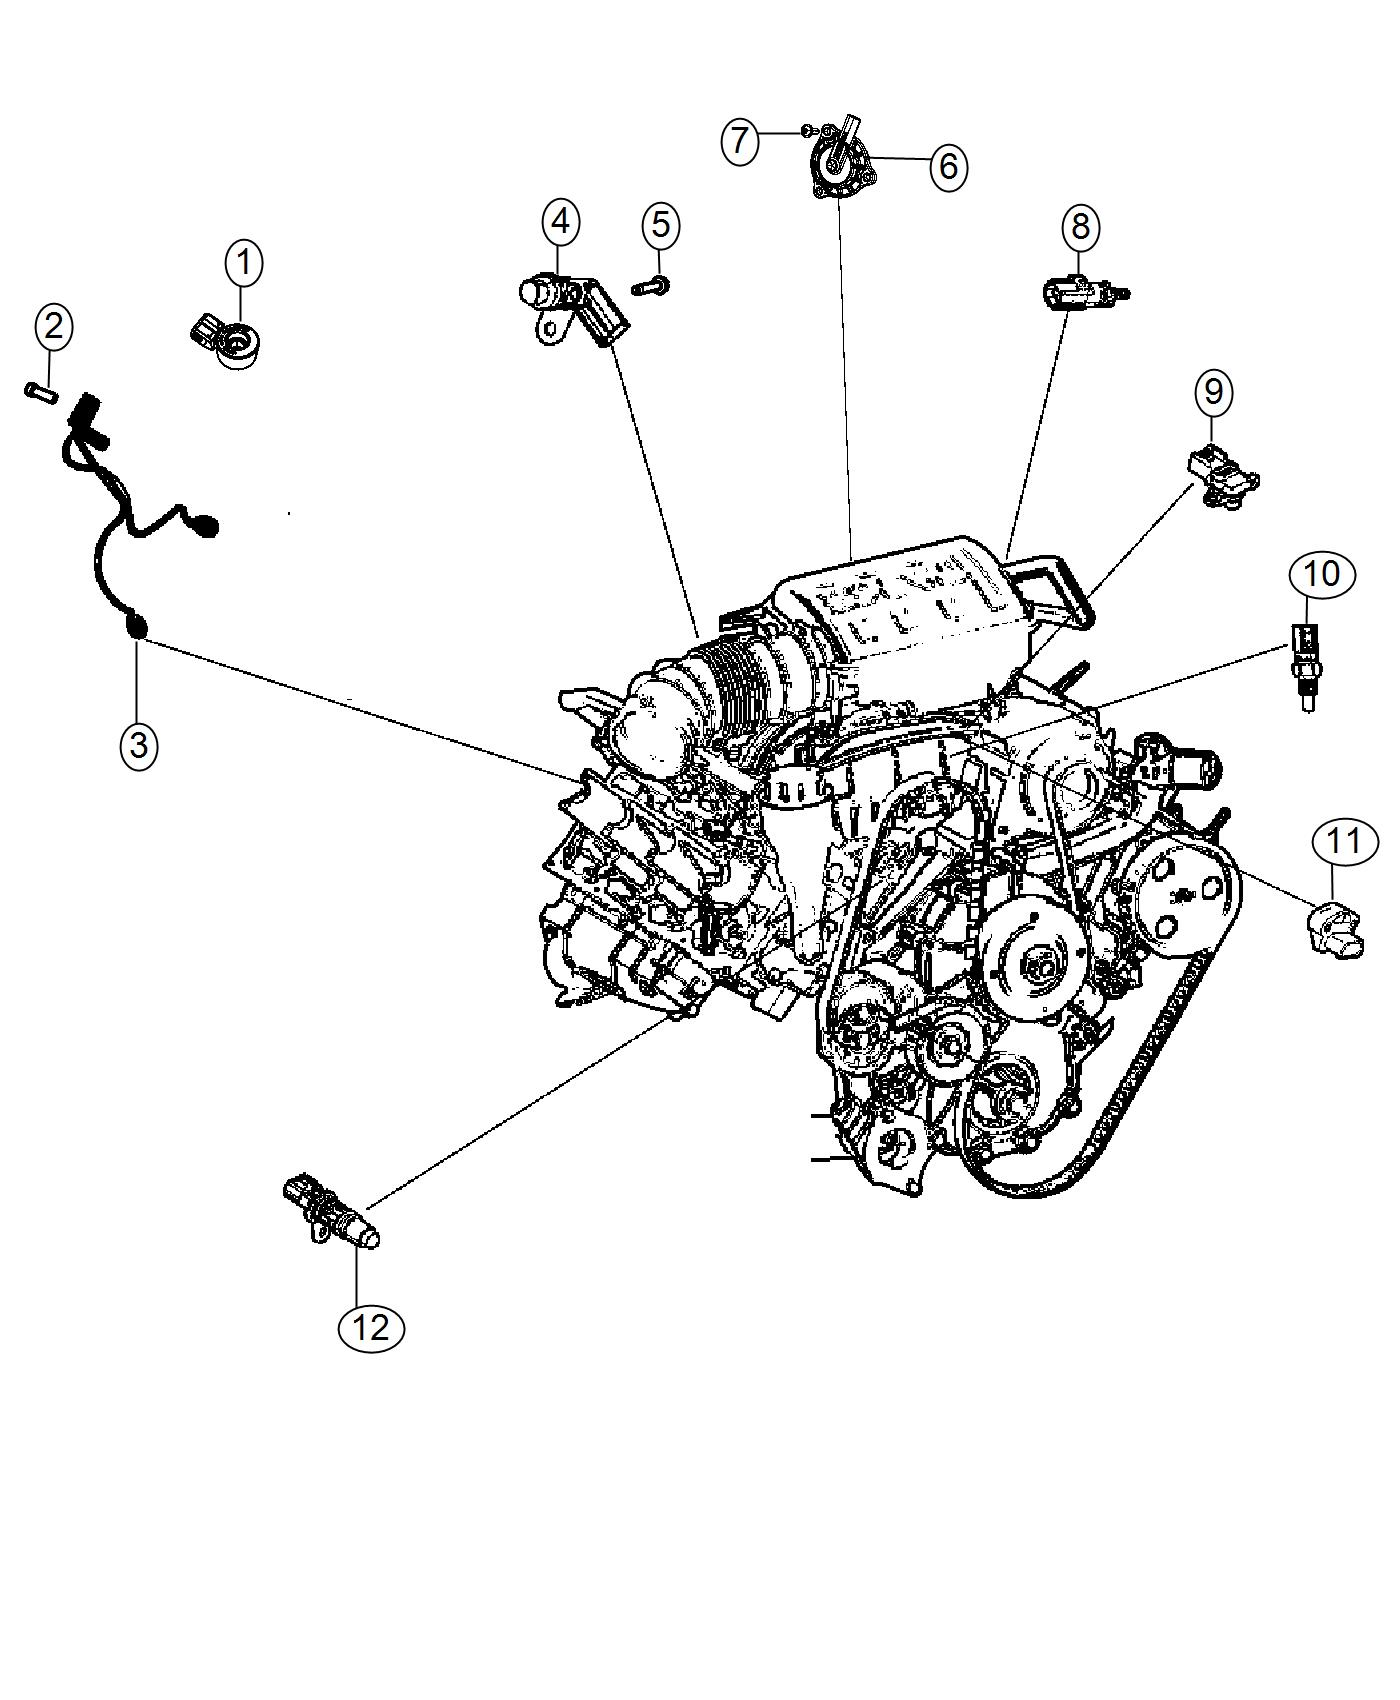 Jeep Wrangler Wiring Used For Knock Oil Pressure And